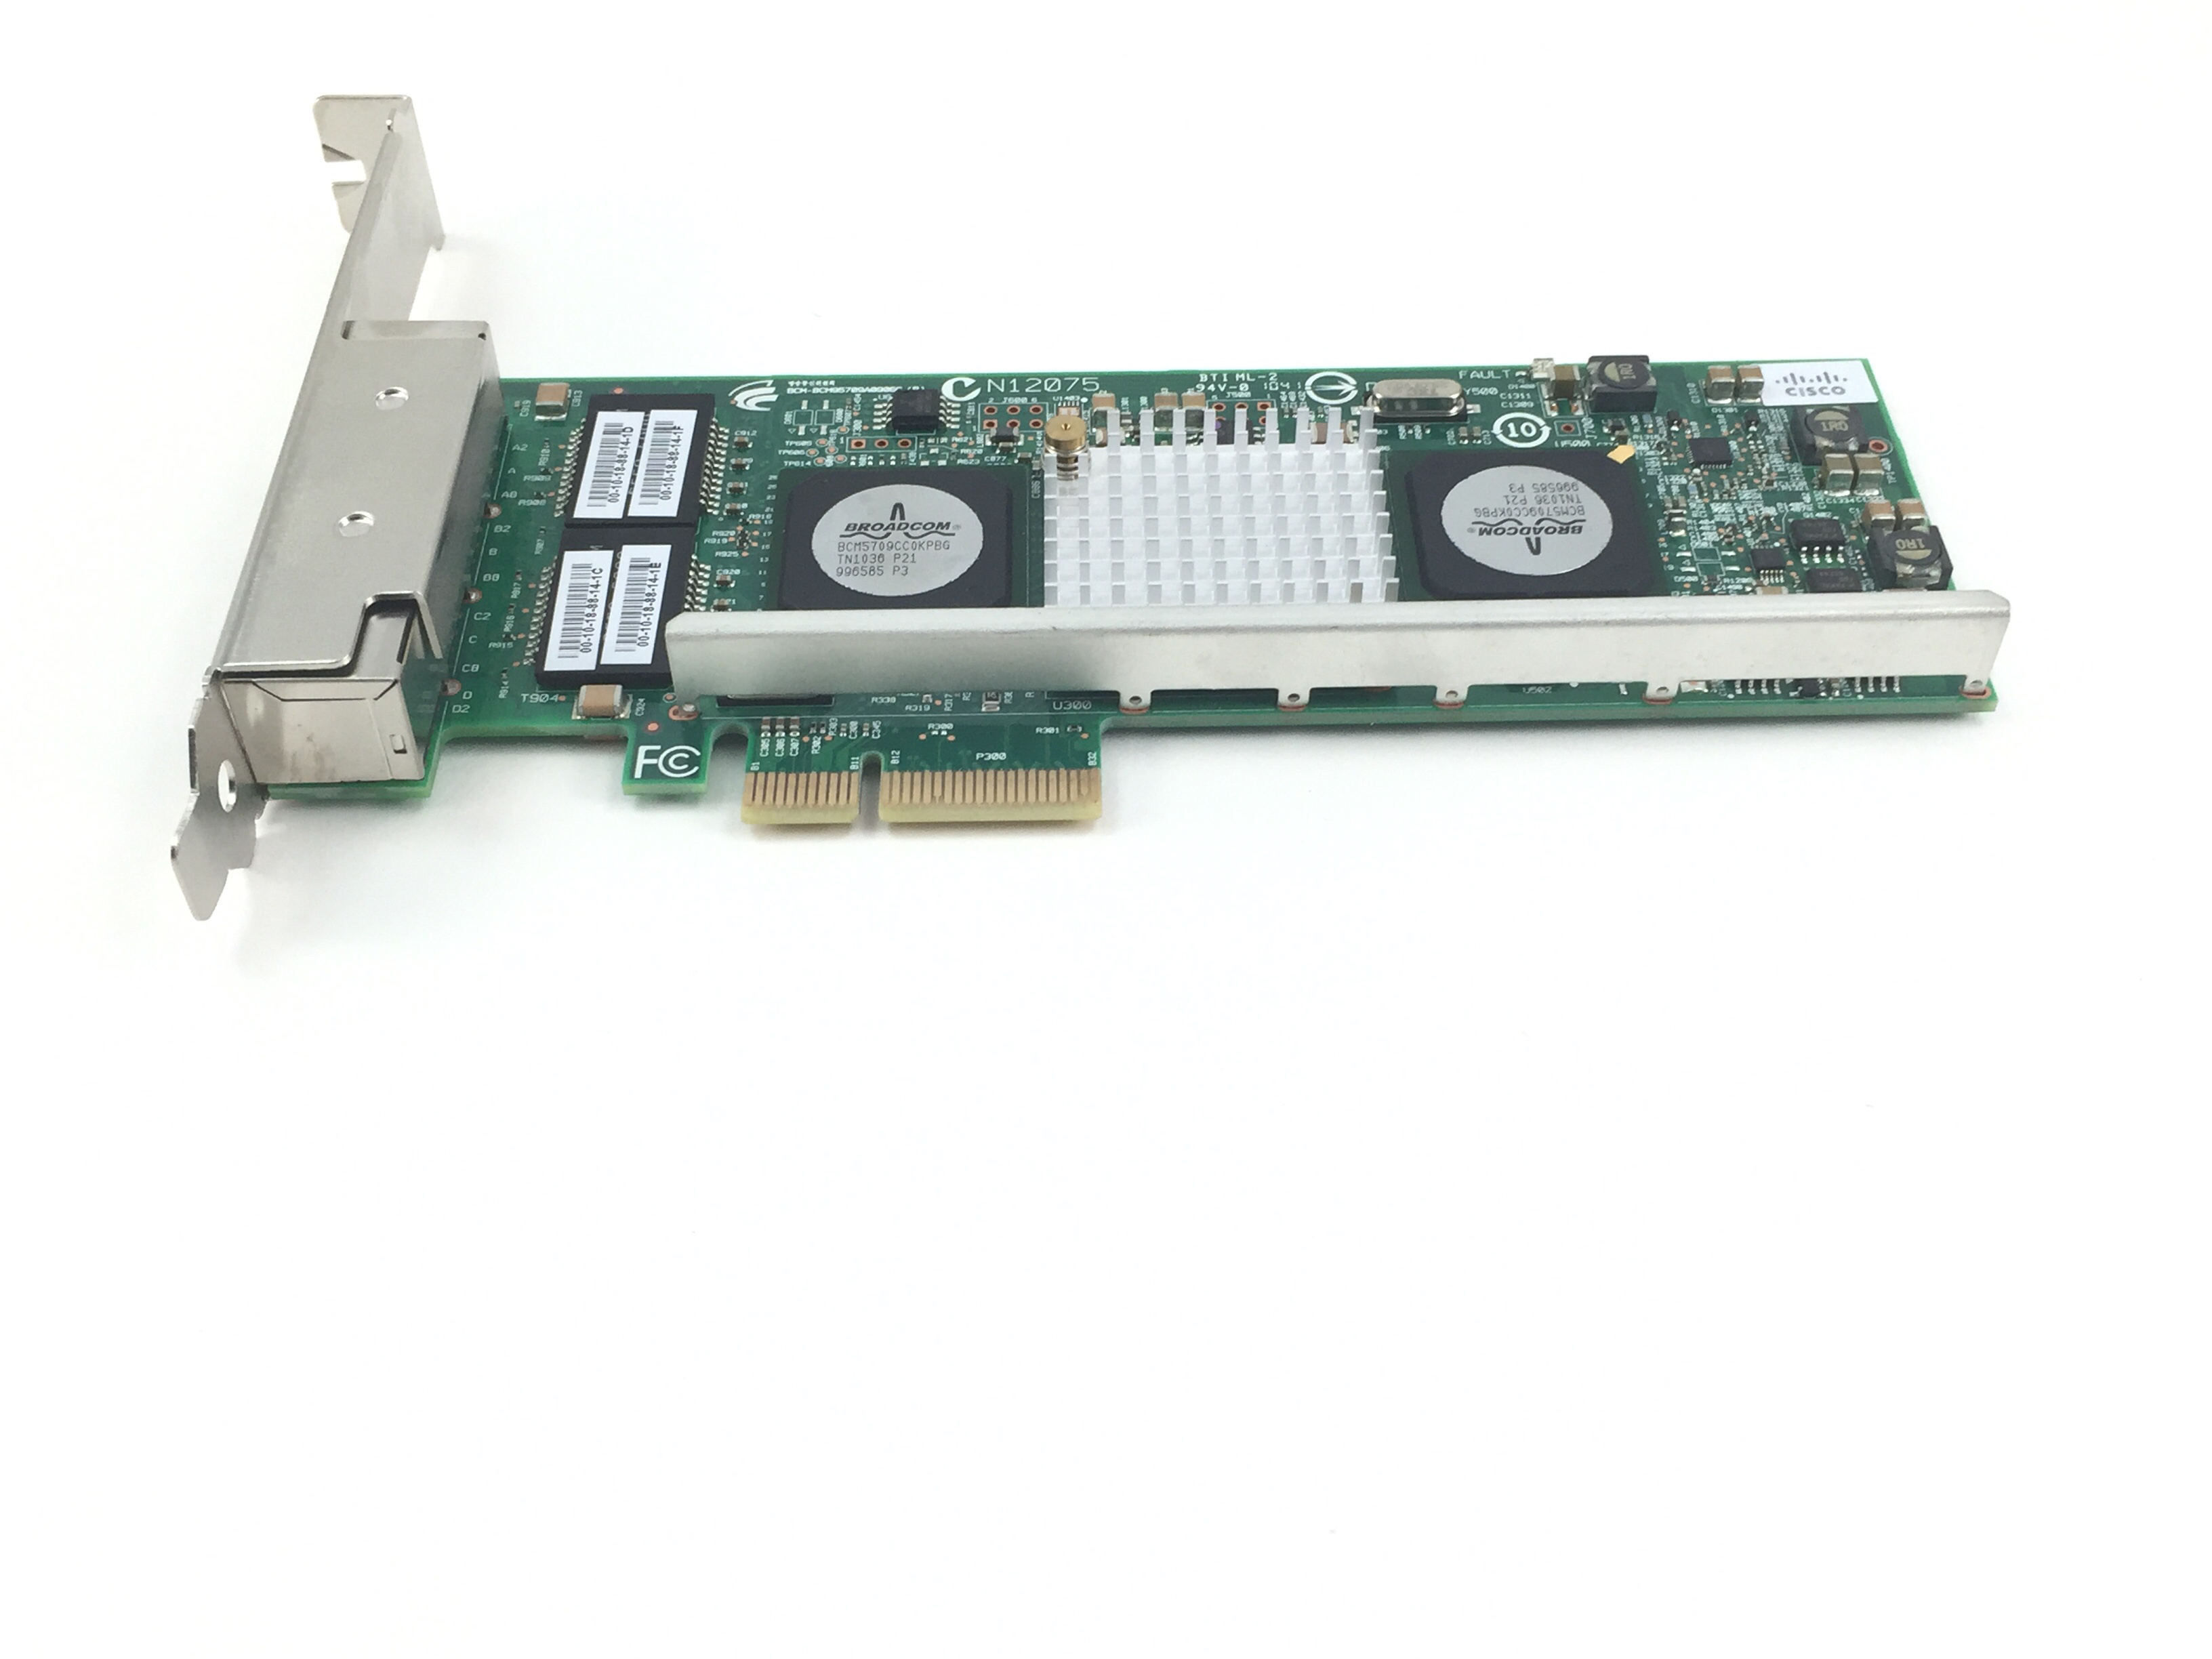 Cisco Broadcom Gigabit Ethernet PCI-E Network Card 4 Port (N12075)